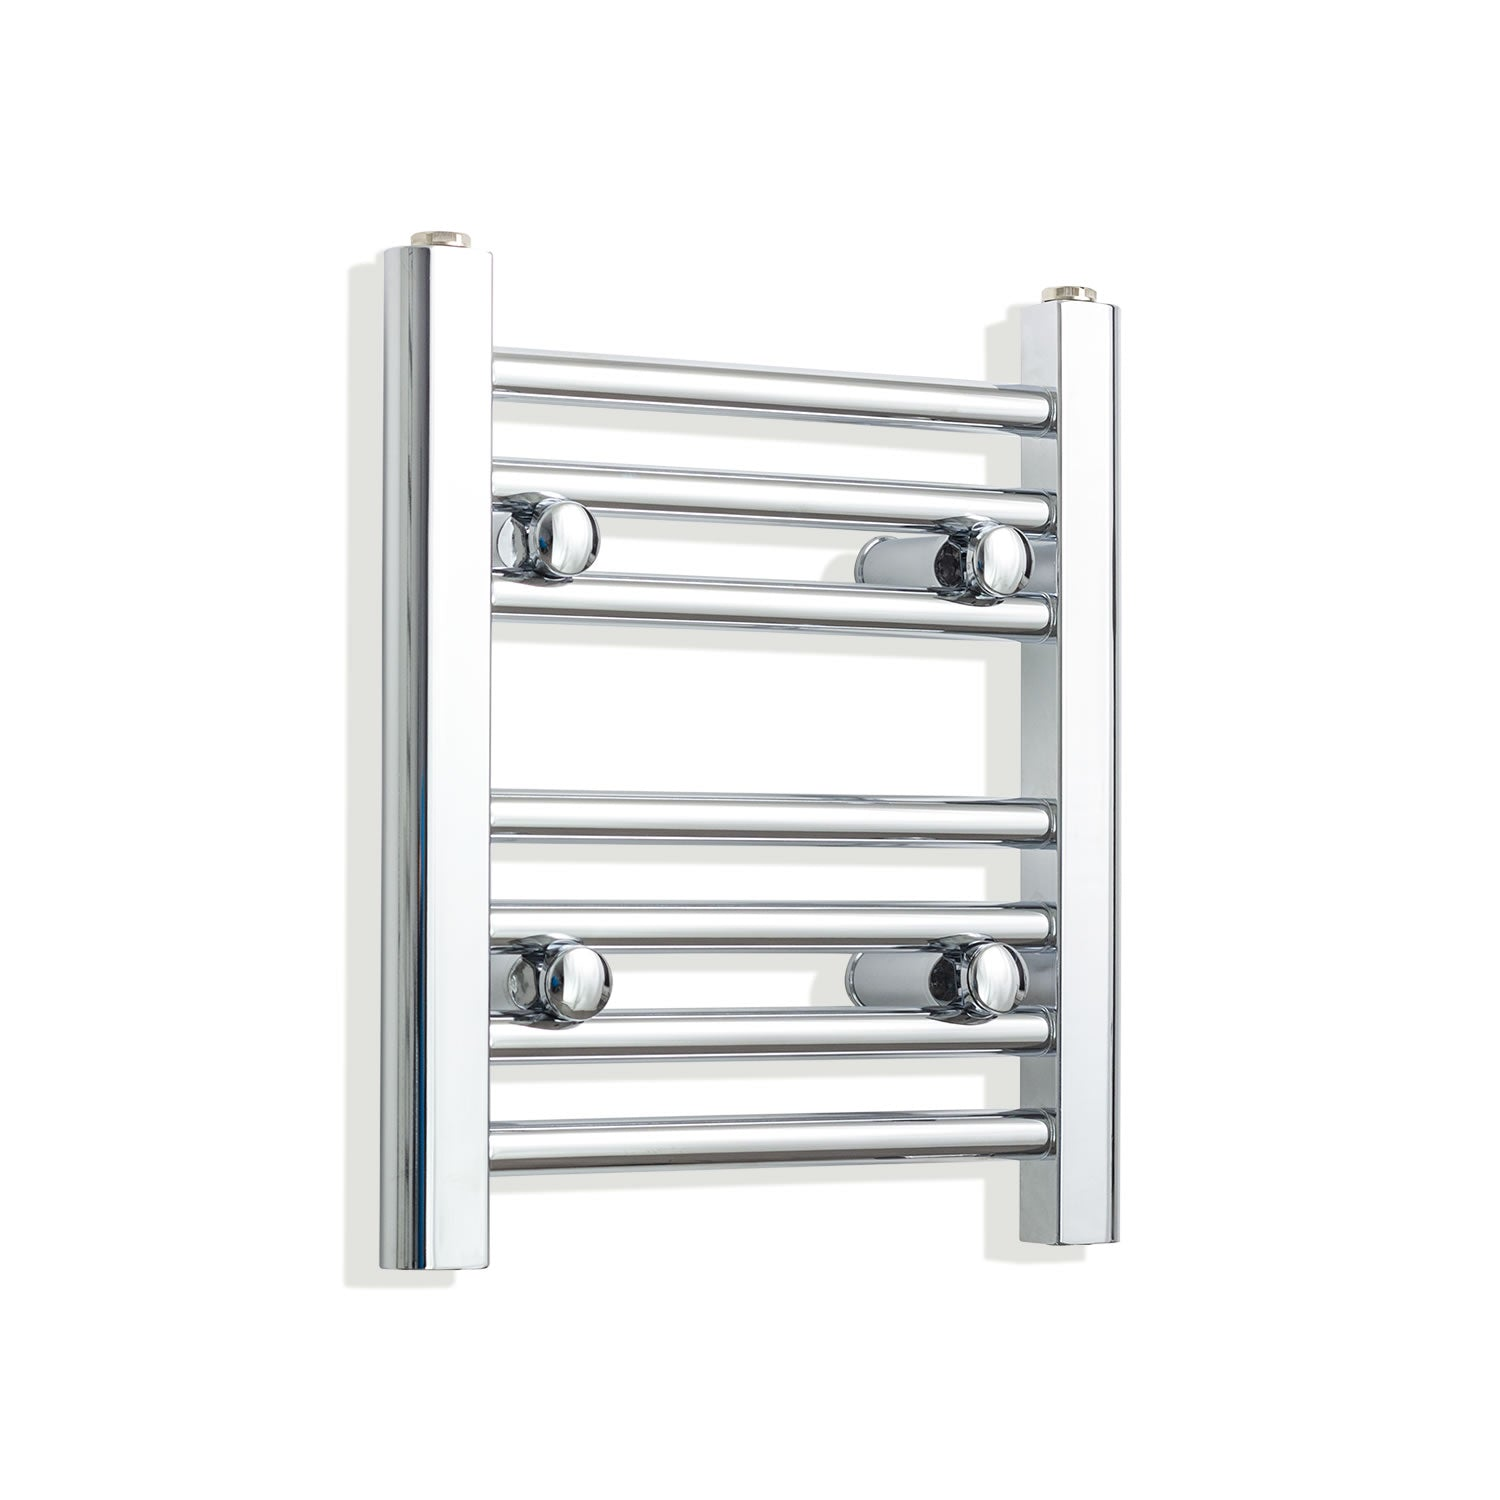 350mm Wide 400mm High Chrome Towel Rail Radiator